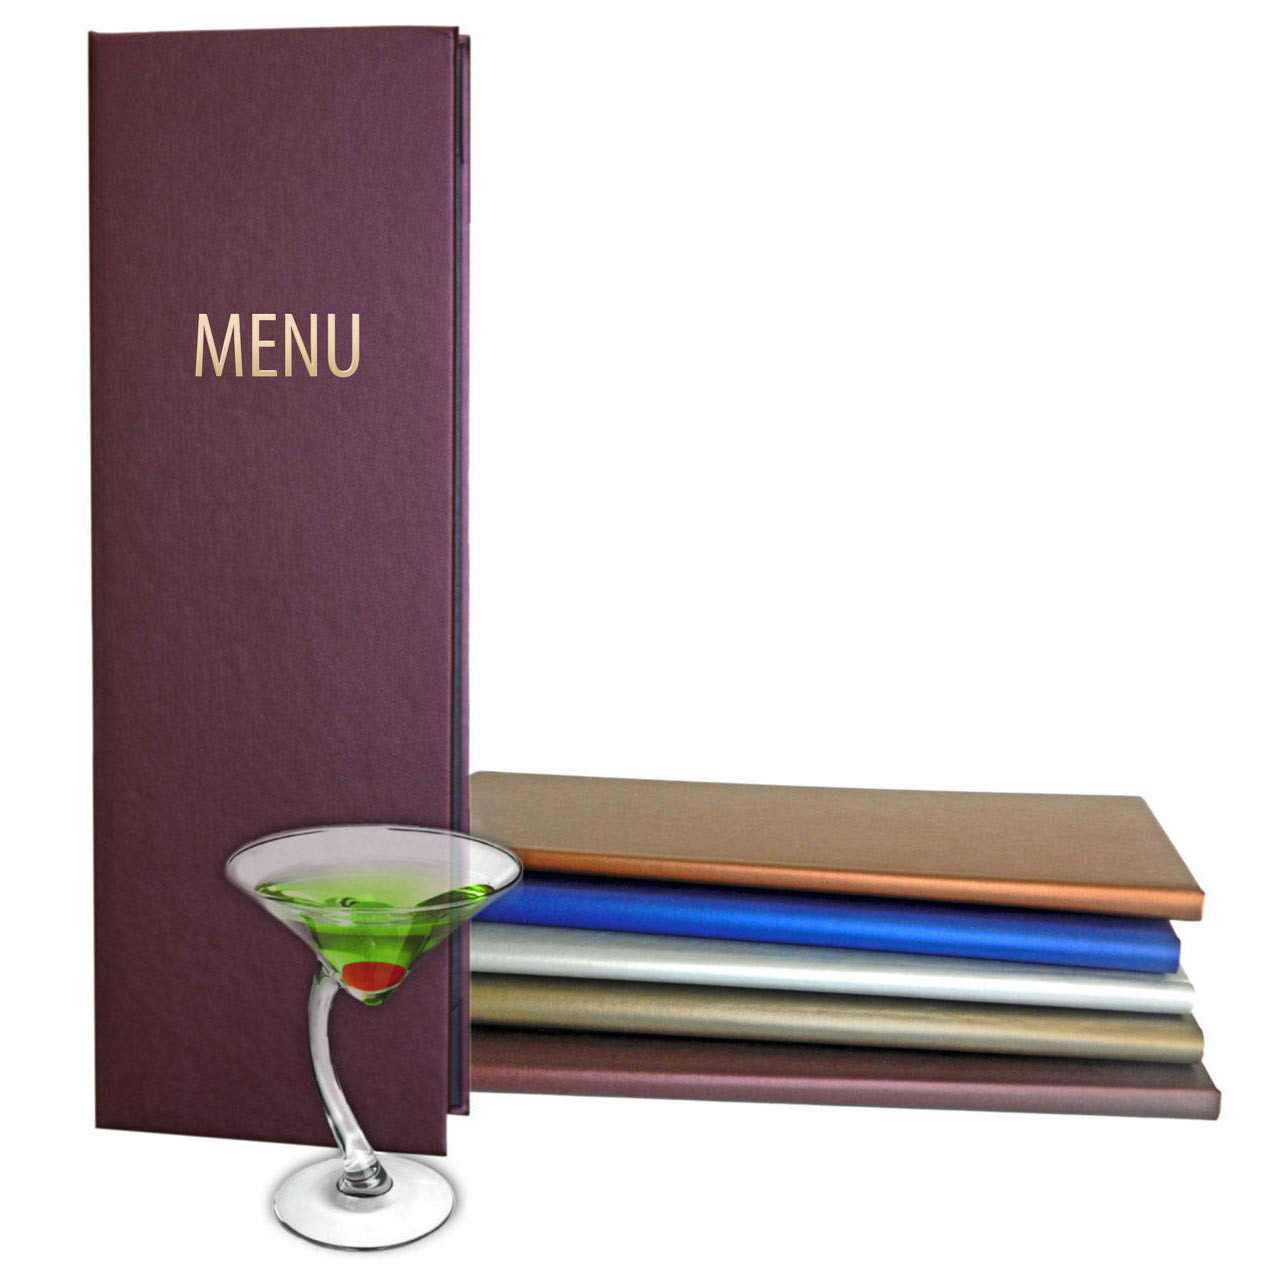 Shimmering Faux Leather Menu Covers